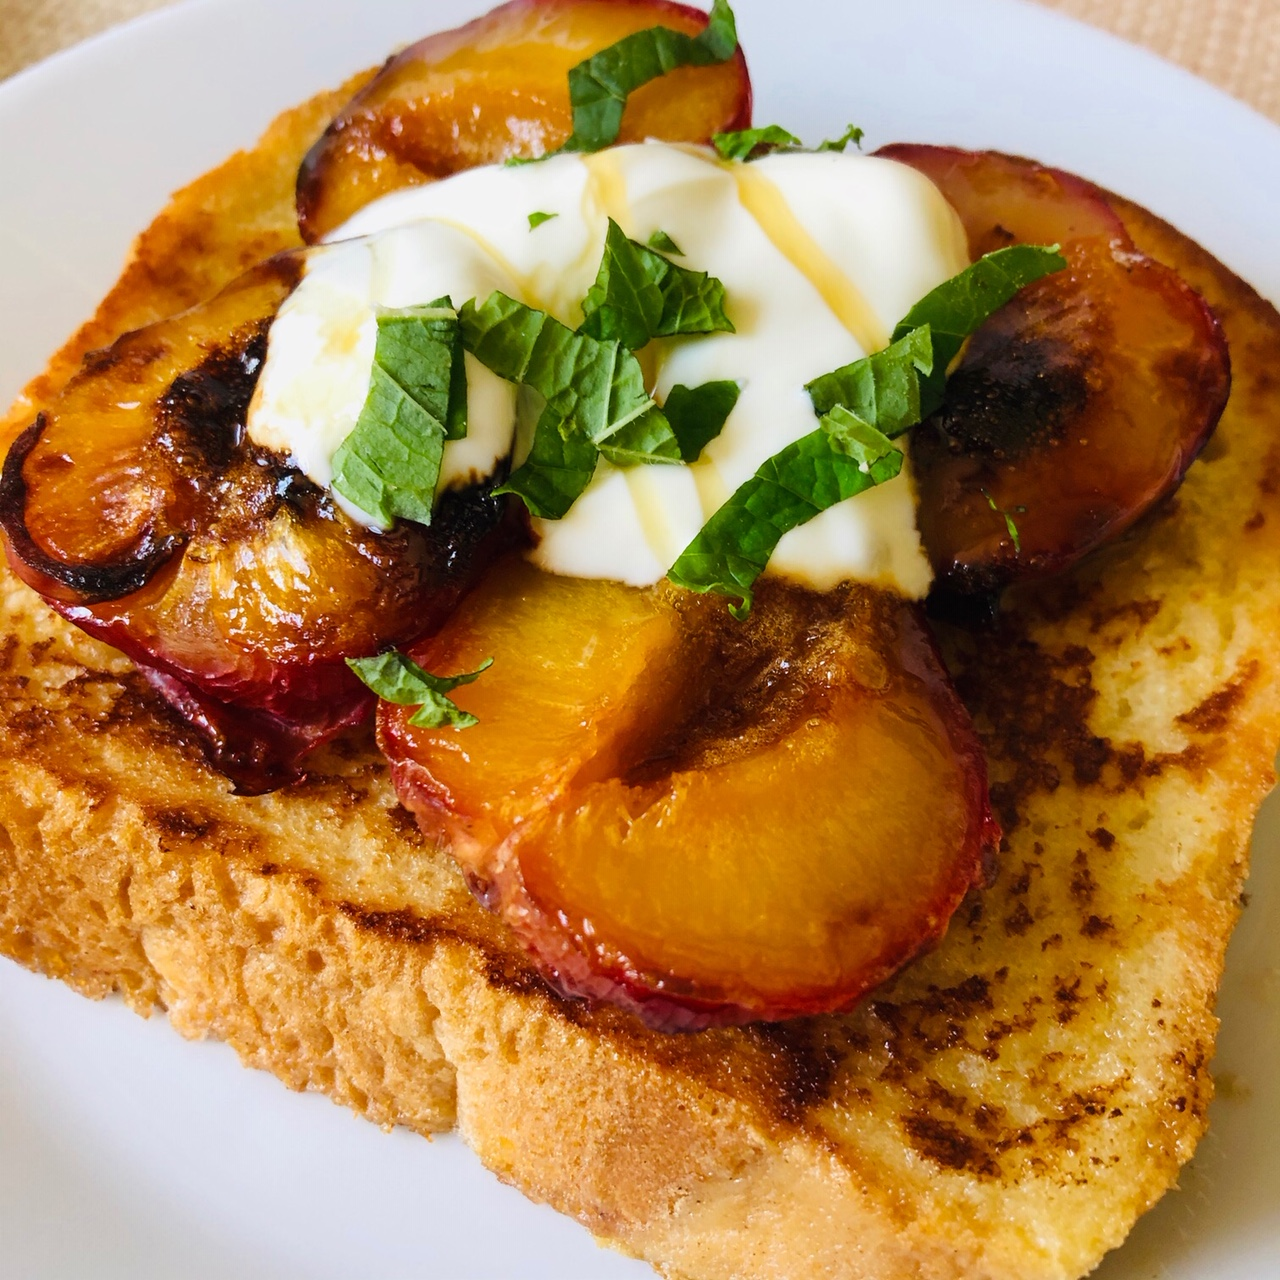 Day 32: French Toast with Plums